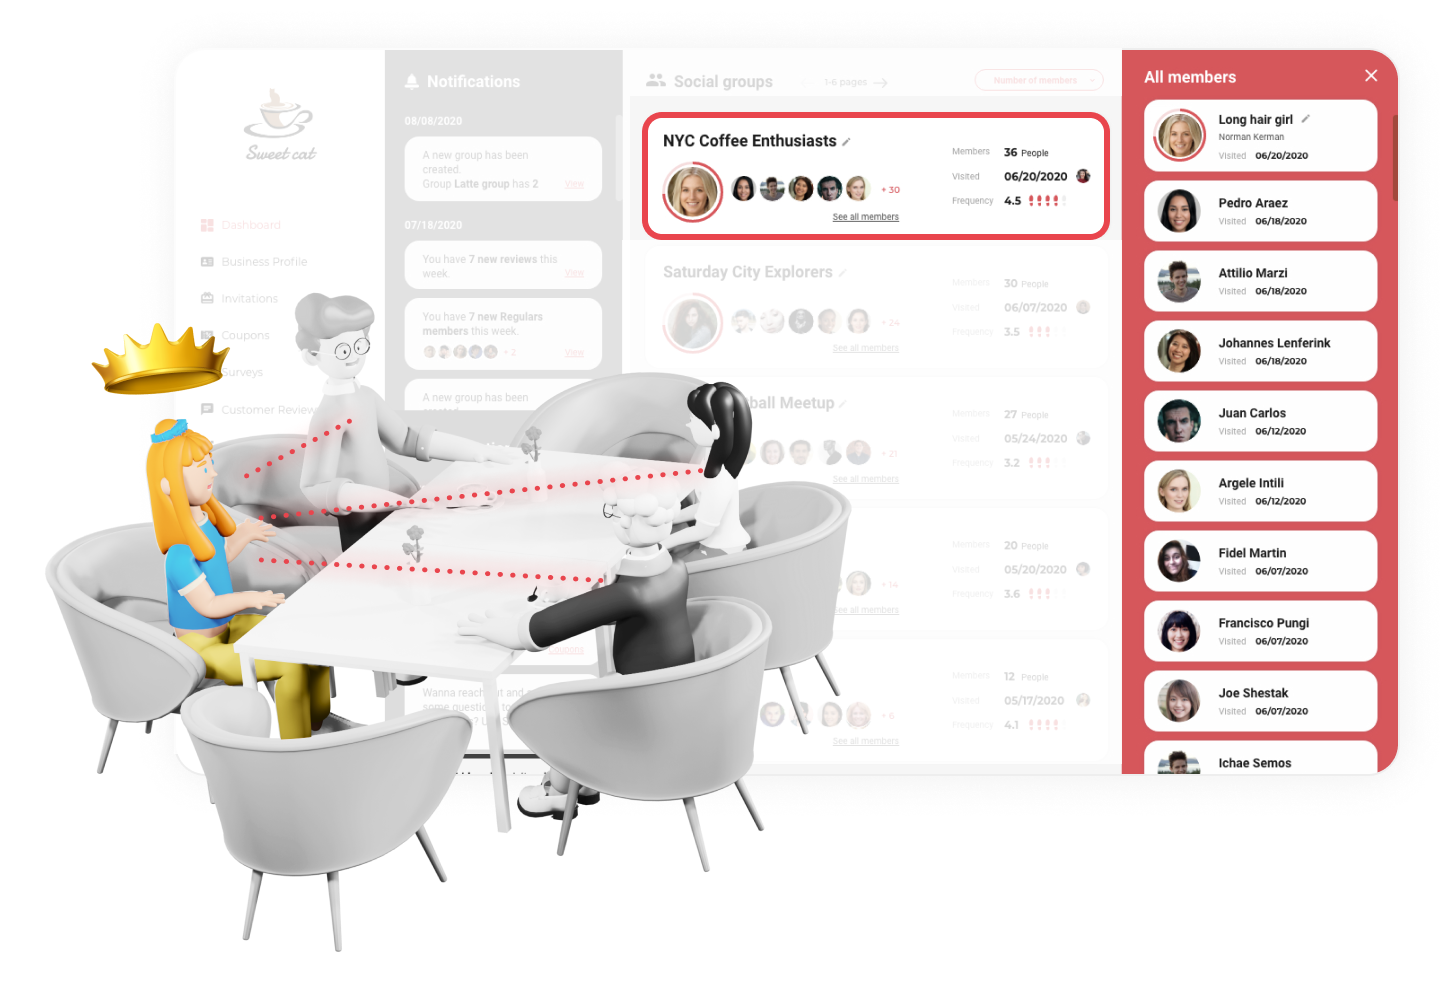 Empower Your Customers, Grow Your Business Everyone can become an influencer at btwn. Find out who your influencers are through our dashboard. Grow your business through their referrals. Build long term relationships with your loyal customers using our customer engagement tools.